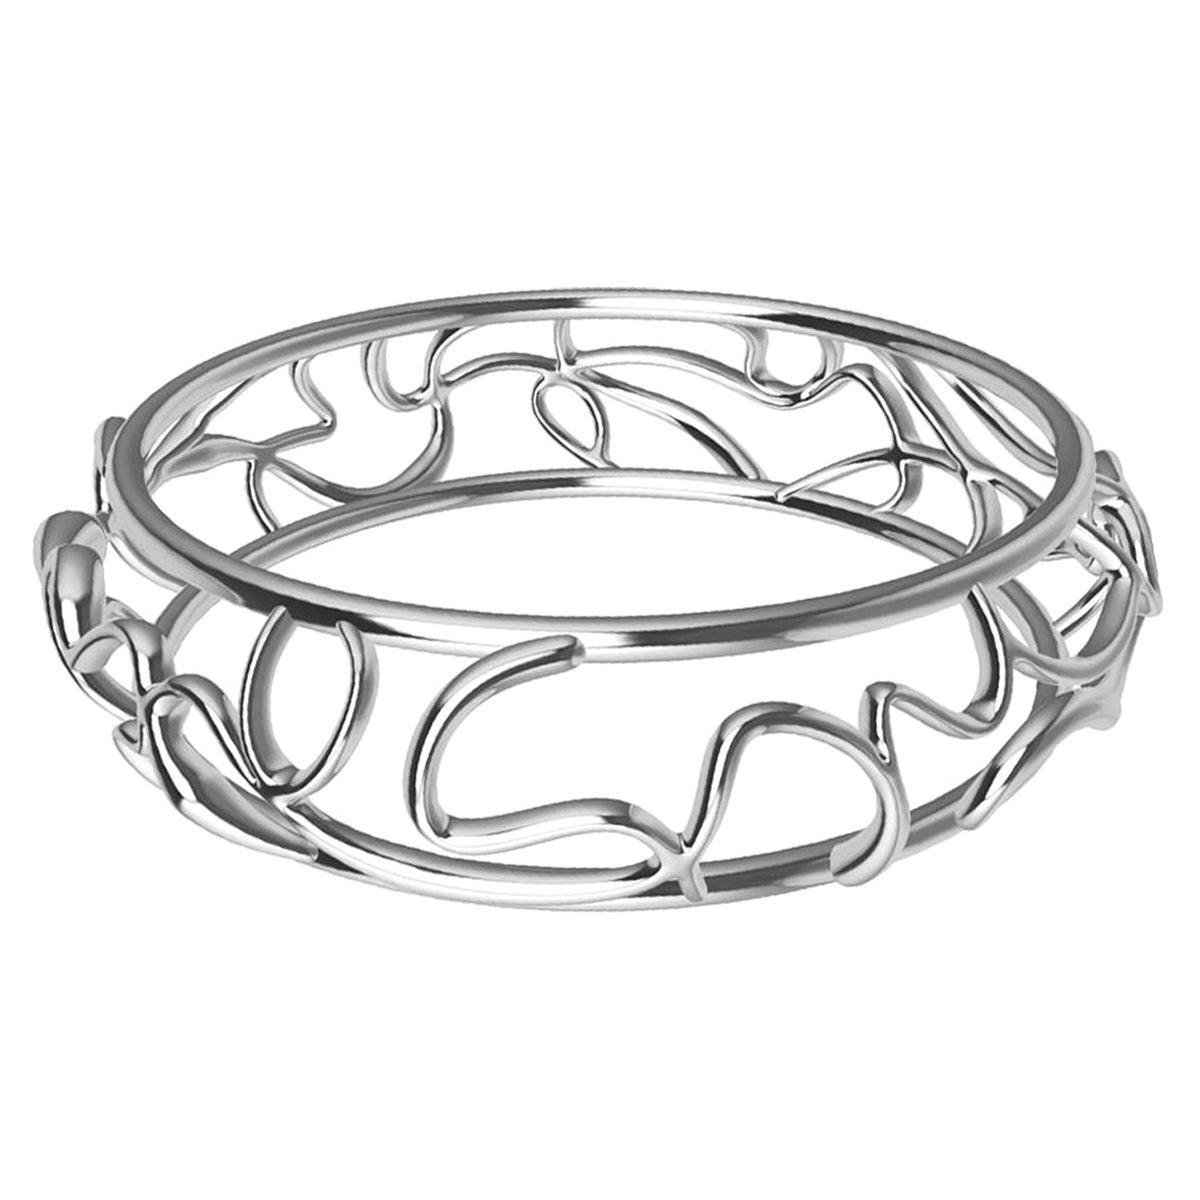 18 Karat White Gold Oceans Bangle